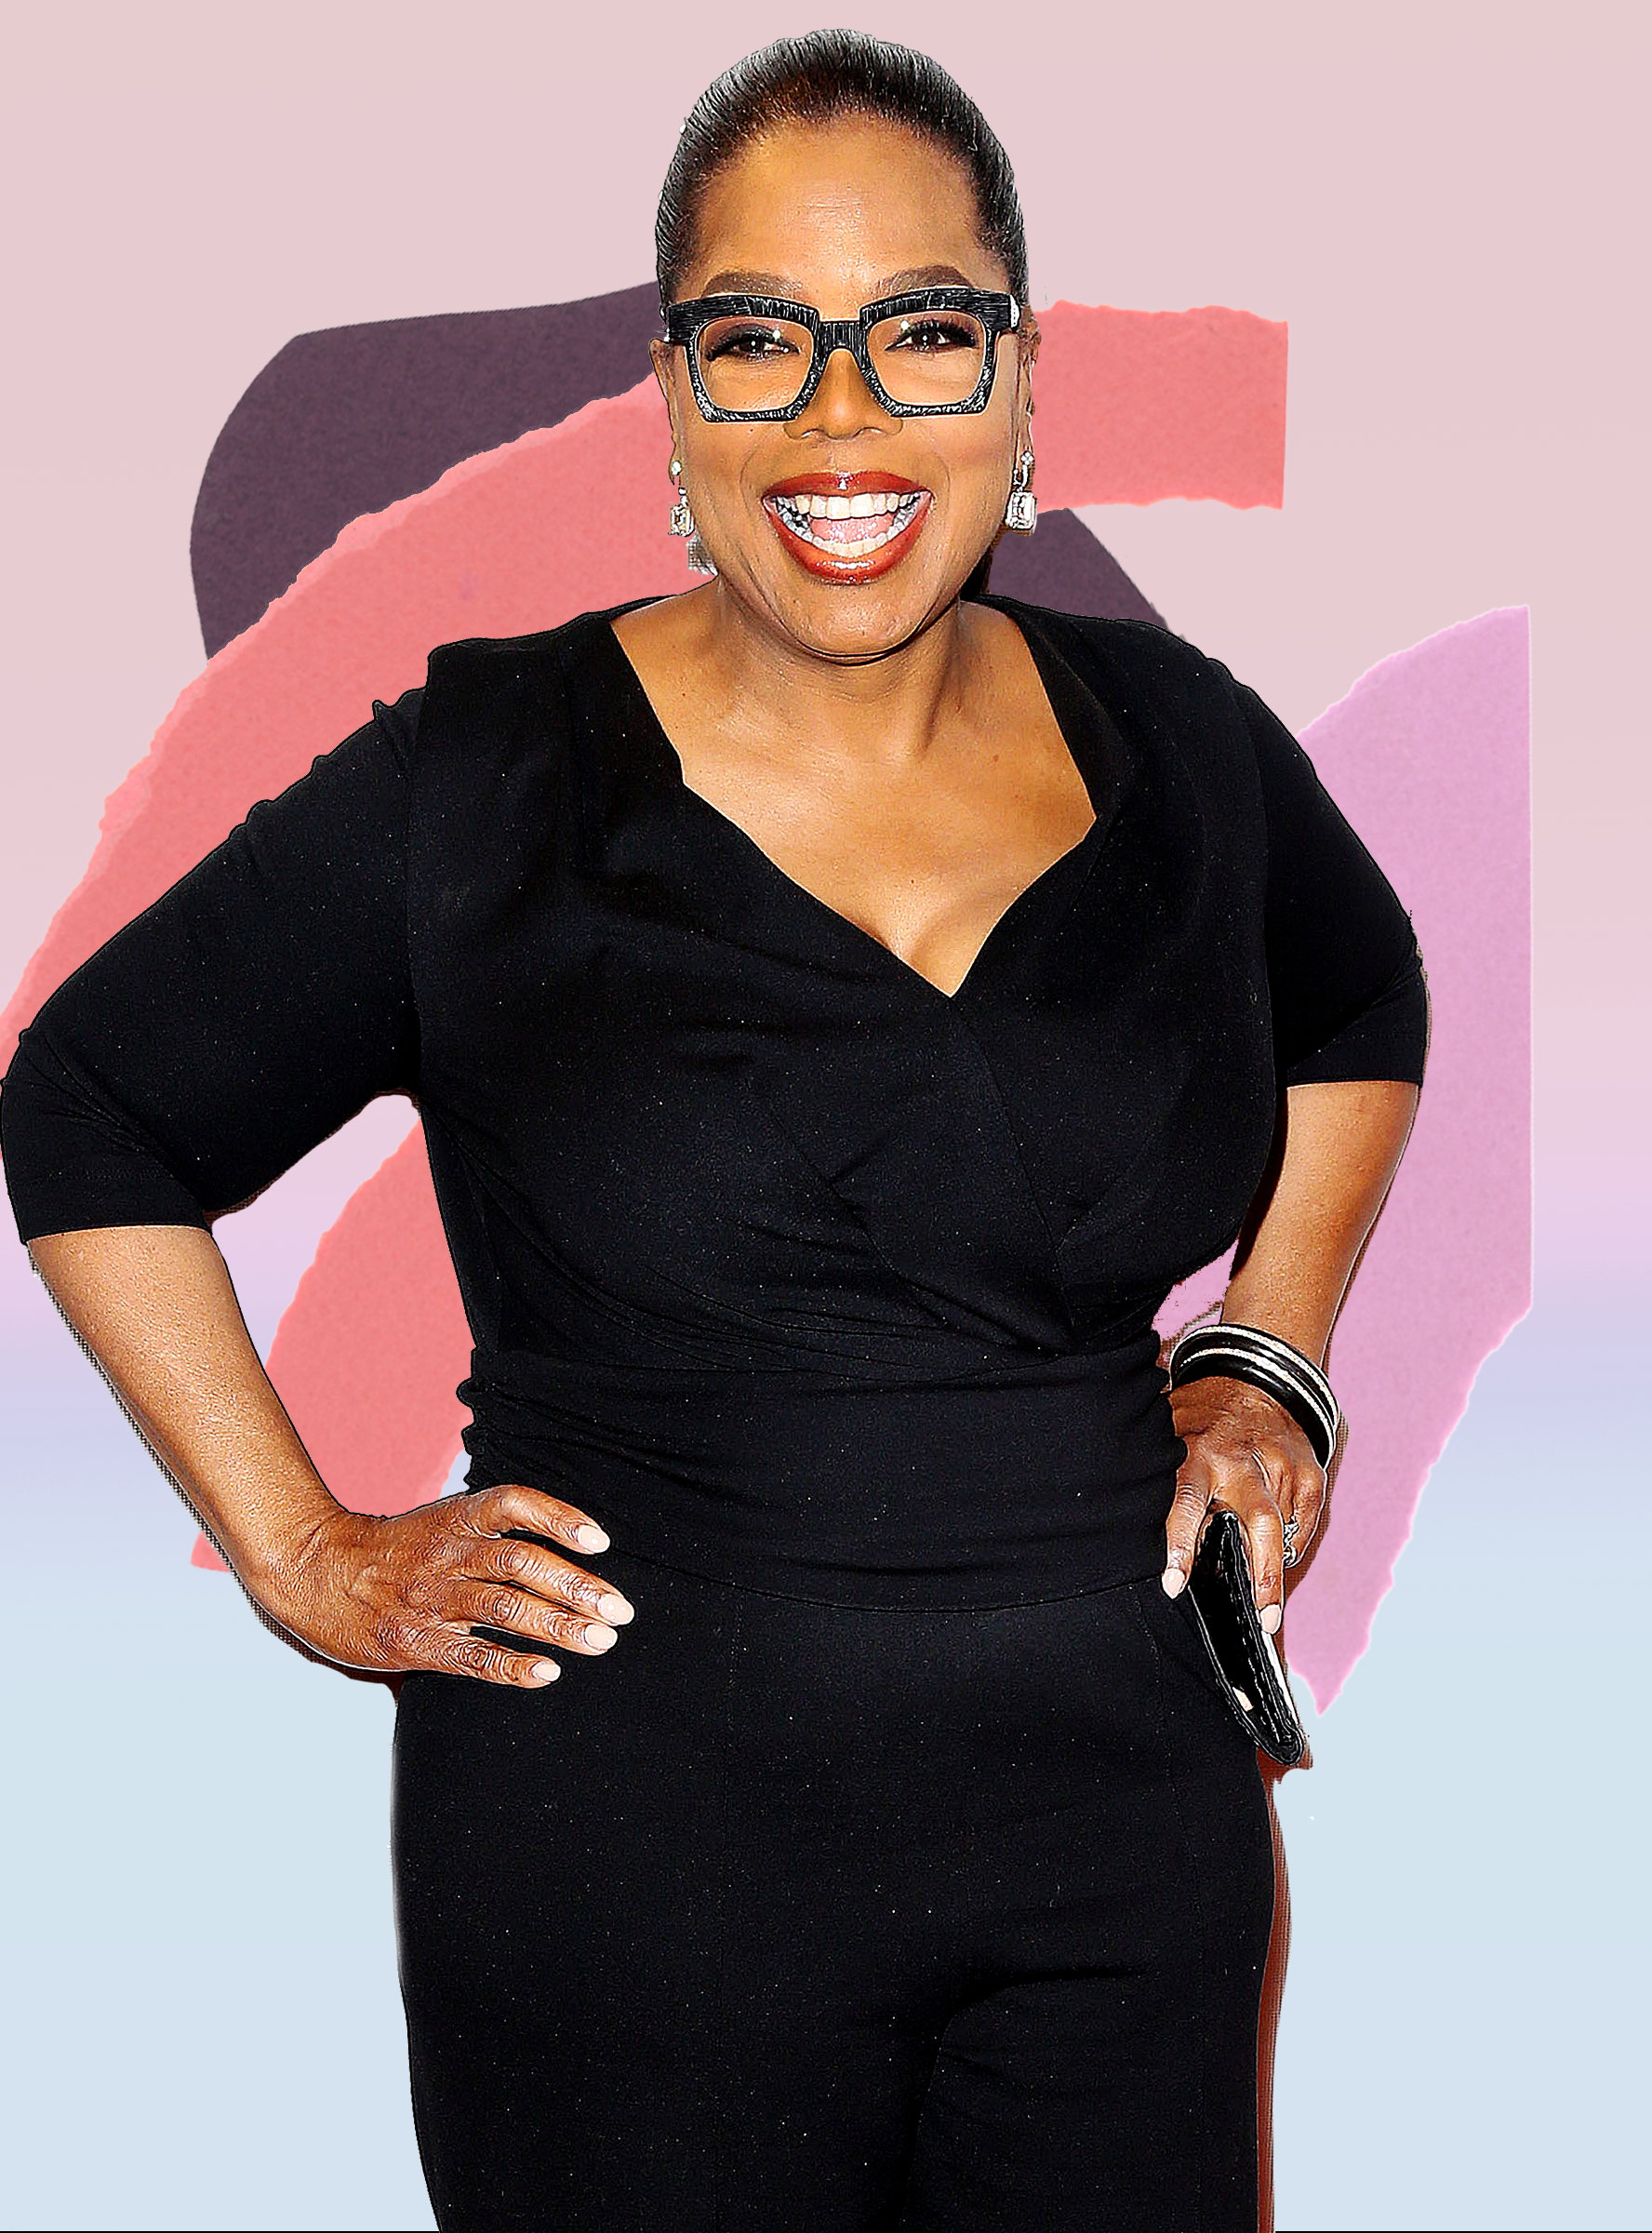 5 Thoughtful Gifts From Oprah's 2017 Holiday Guide